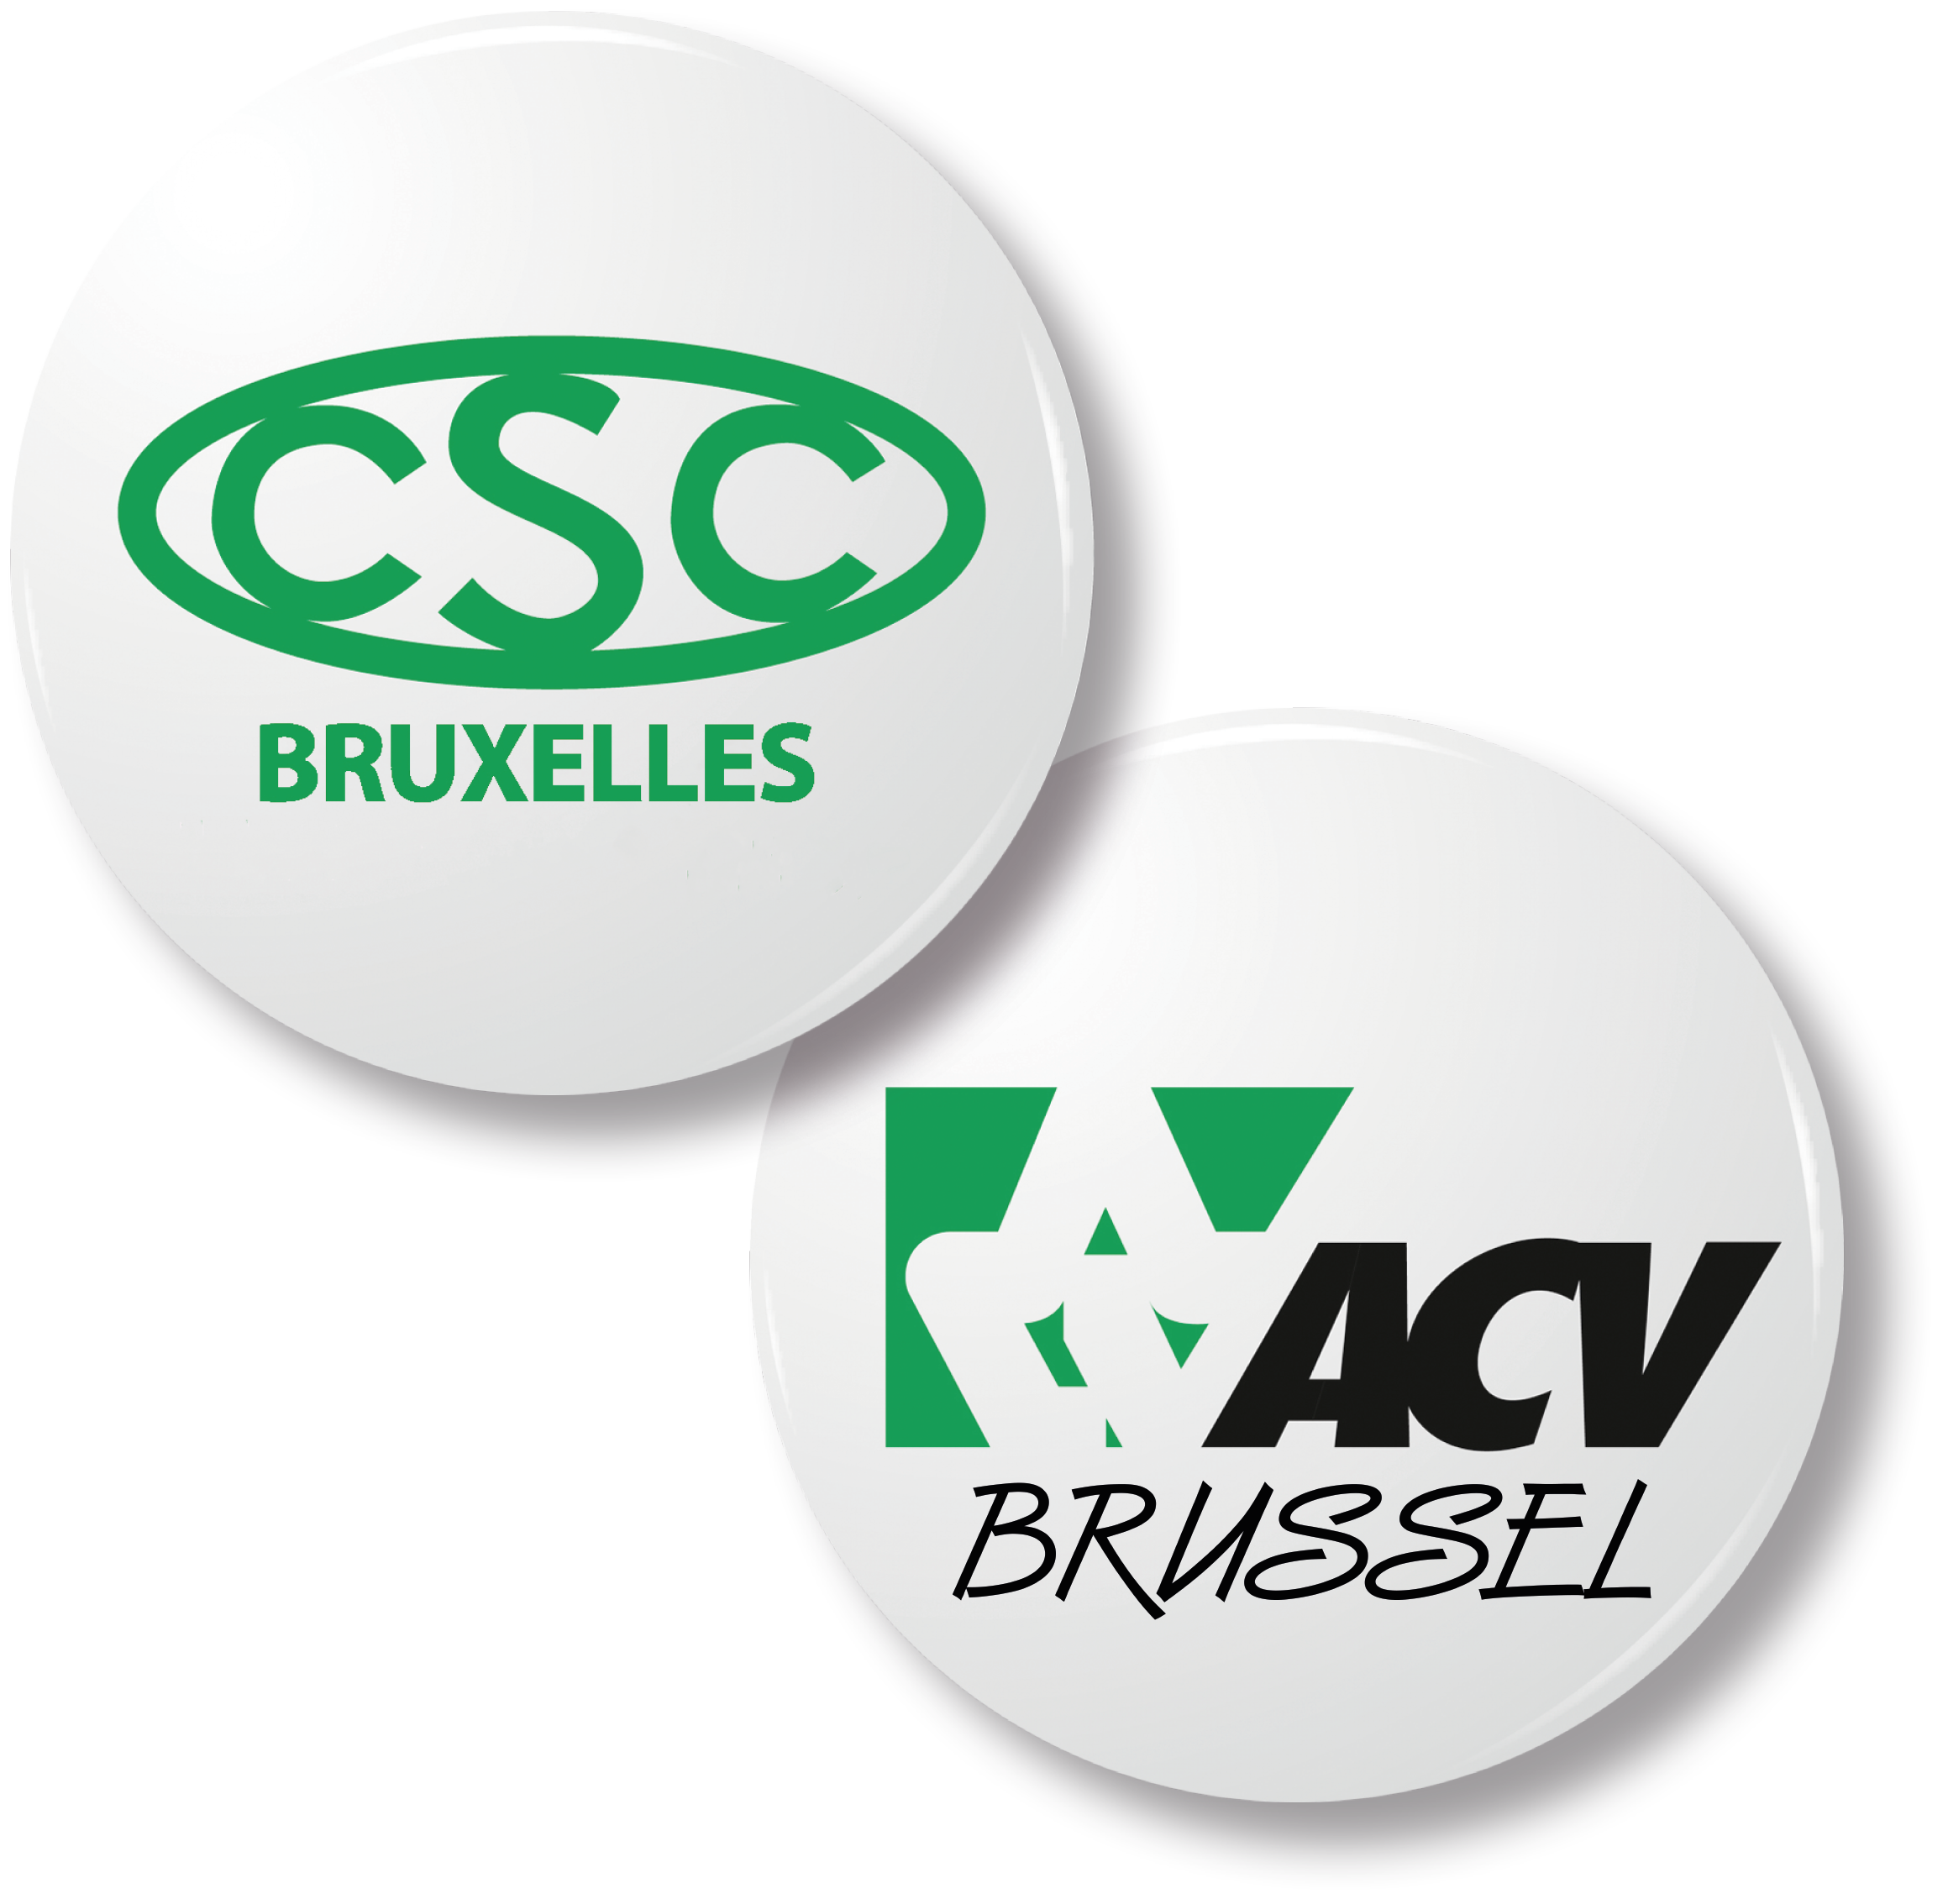 ACVCSCbrussels